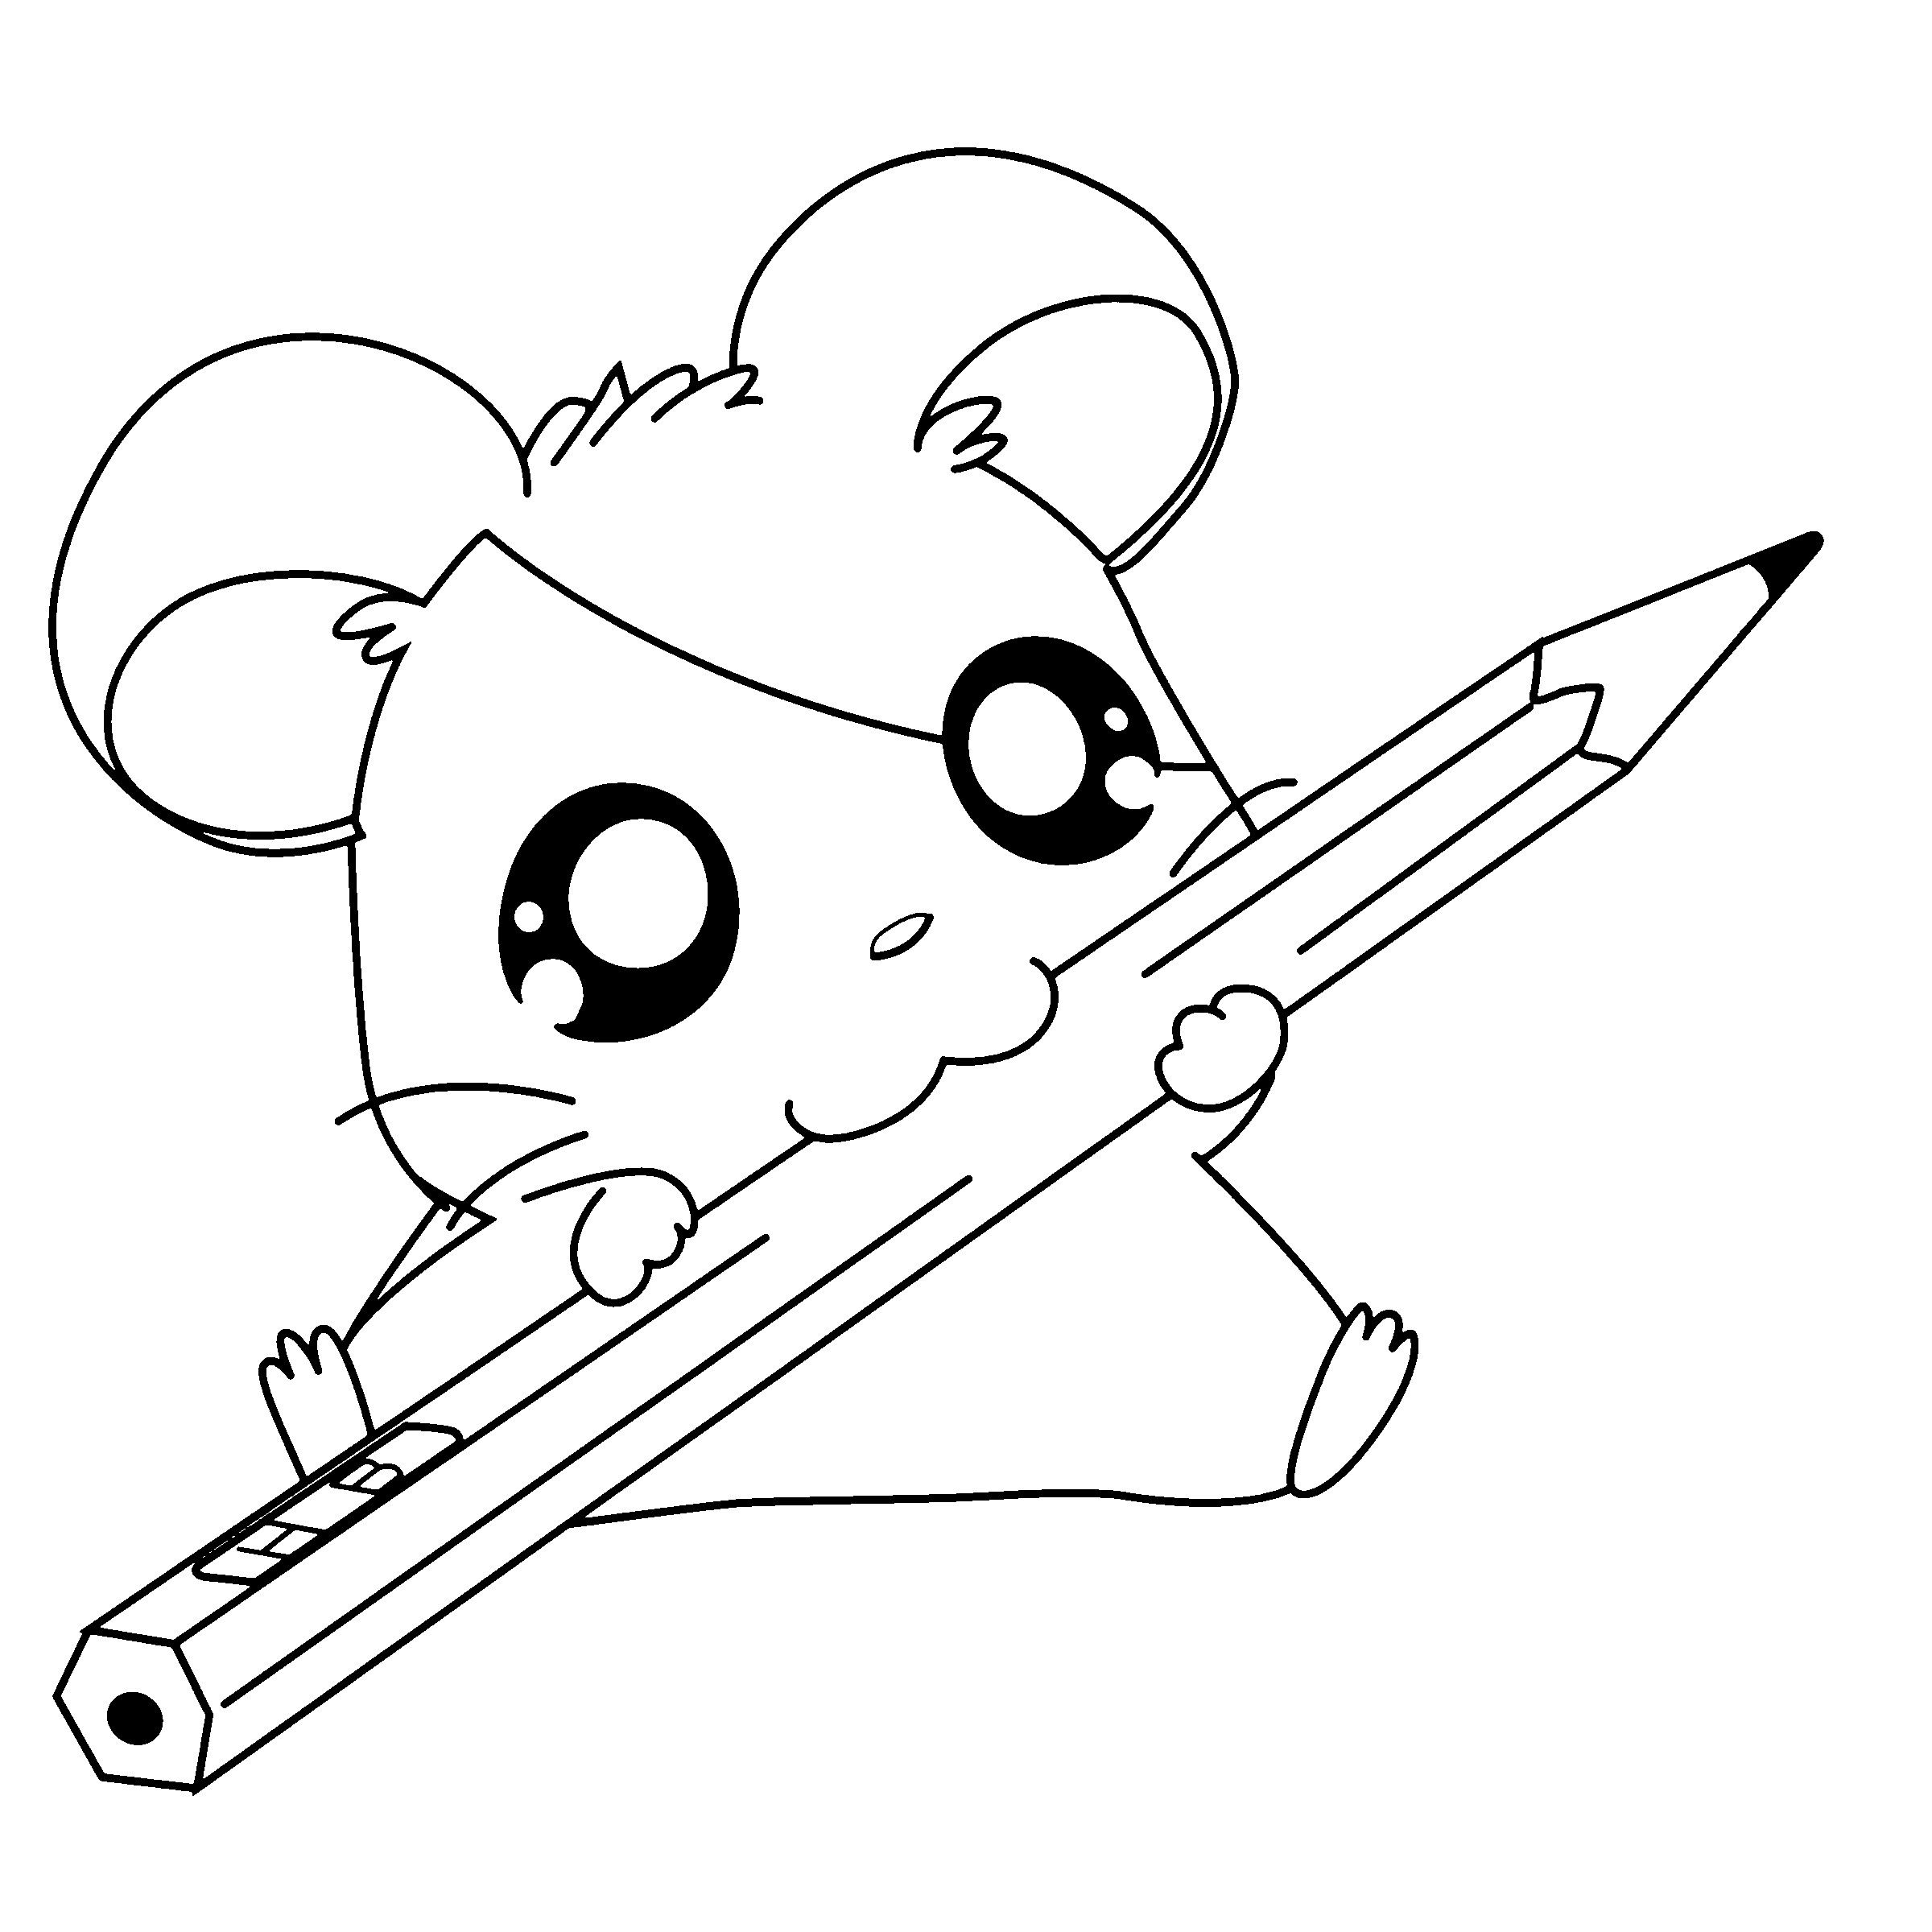 Pin von Tiger Henry auf Coloring Pages | Pinterest